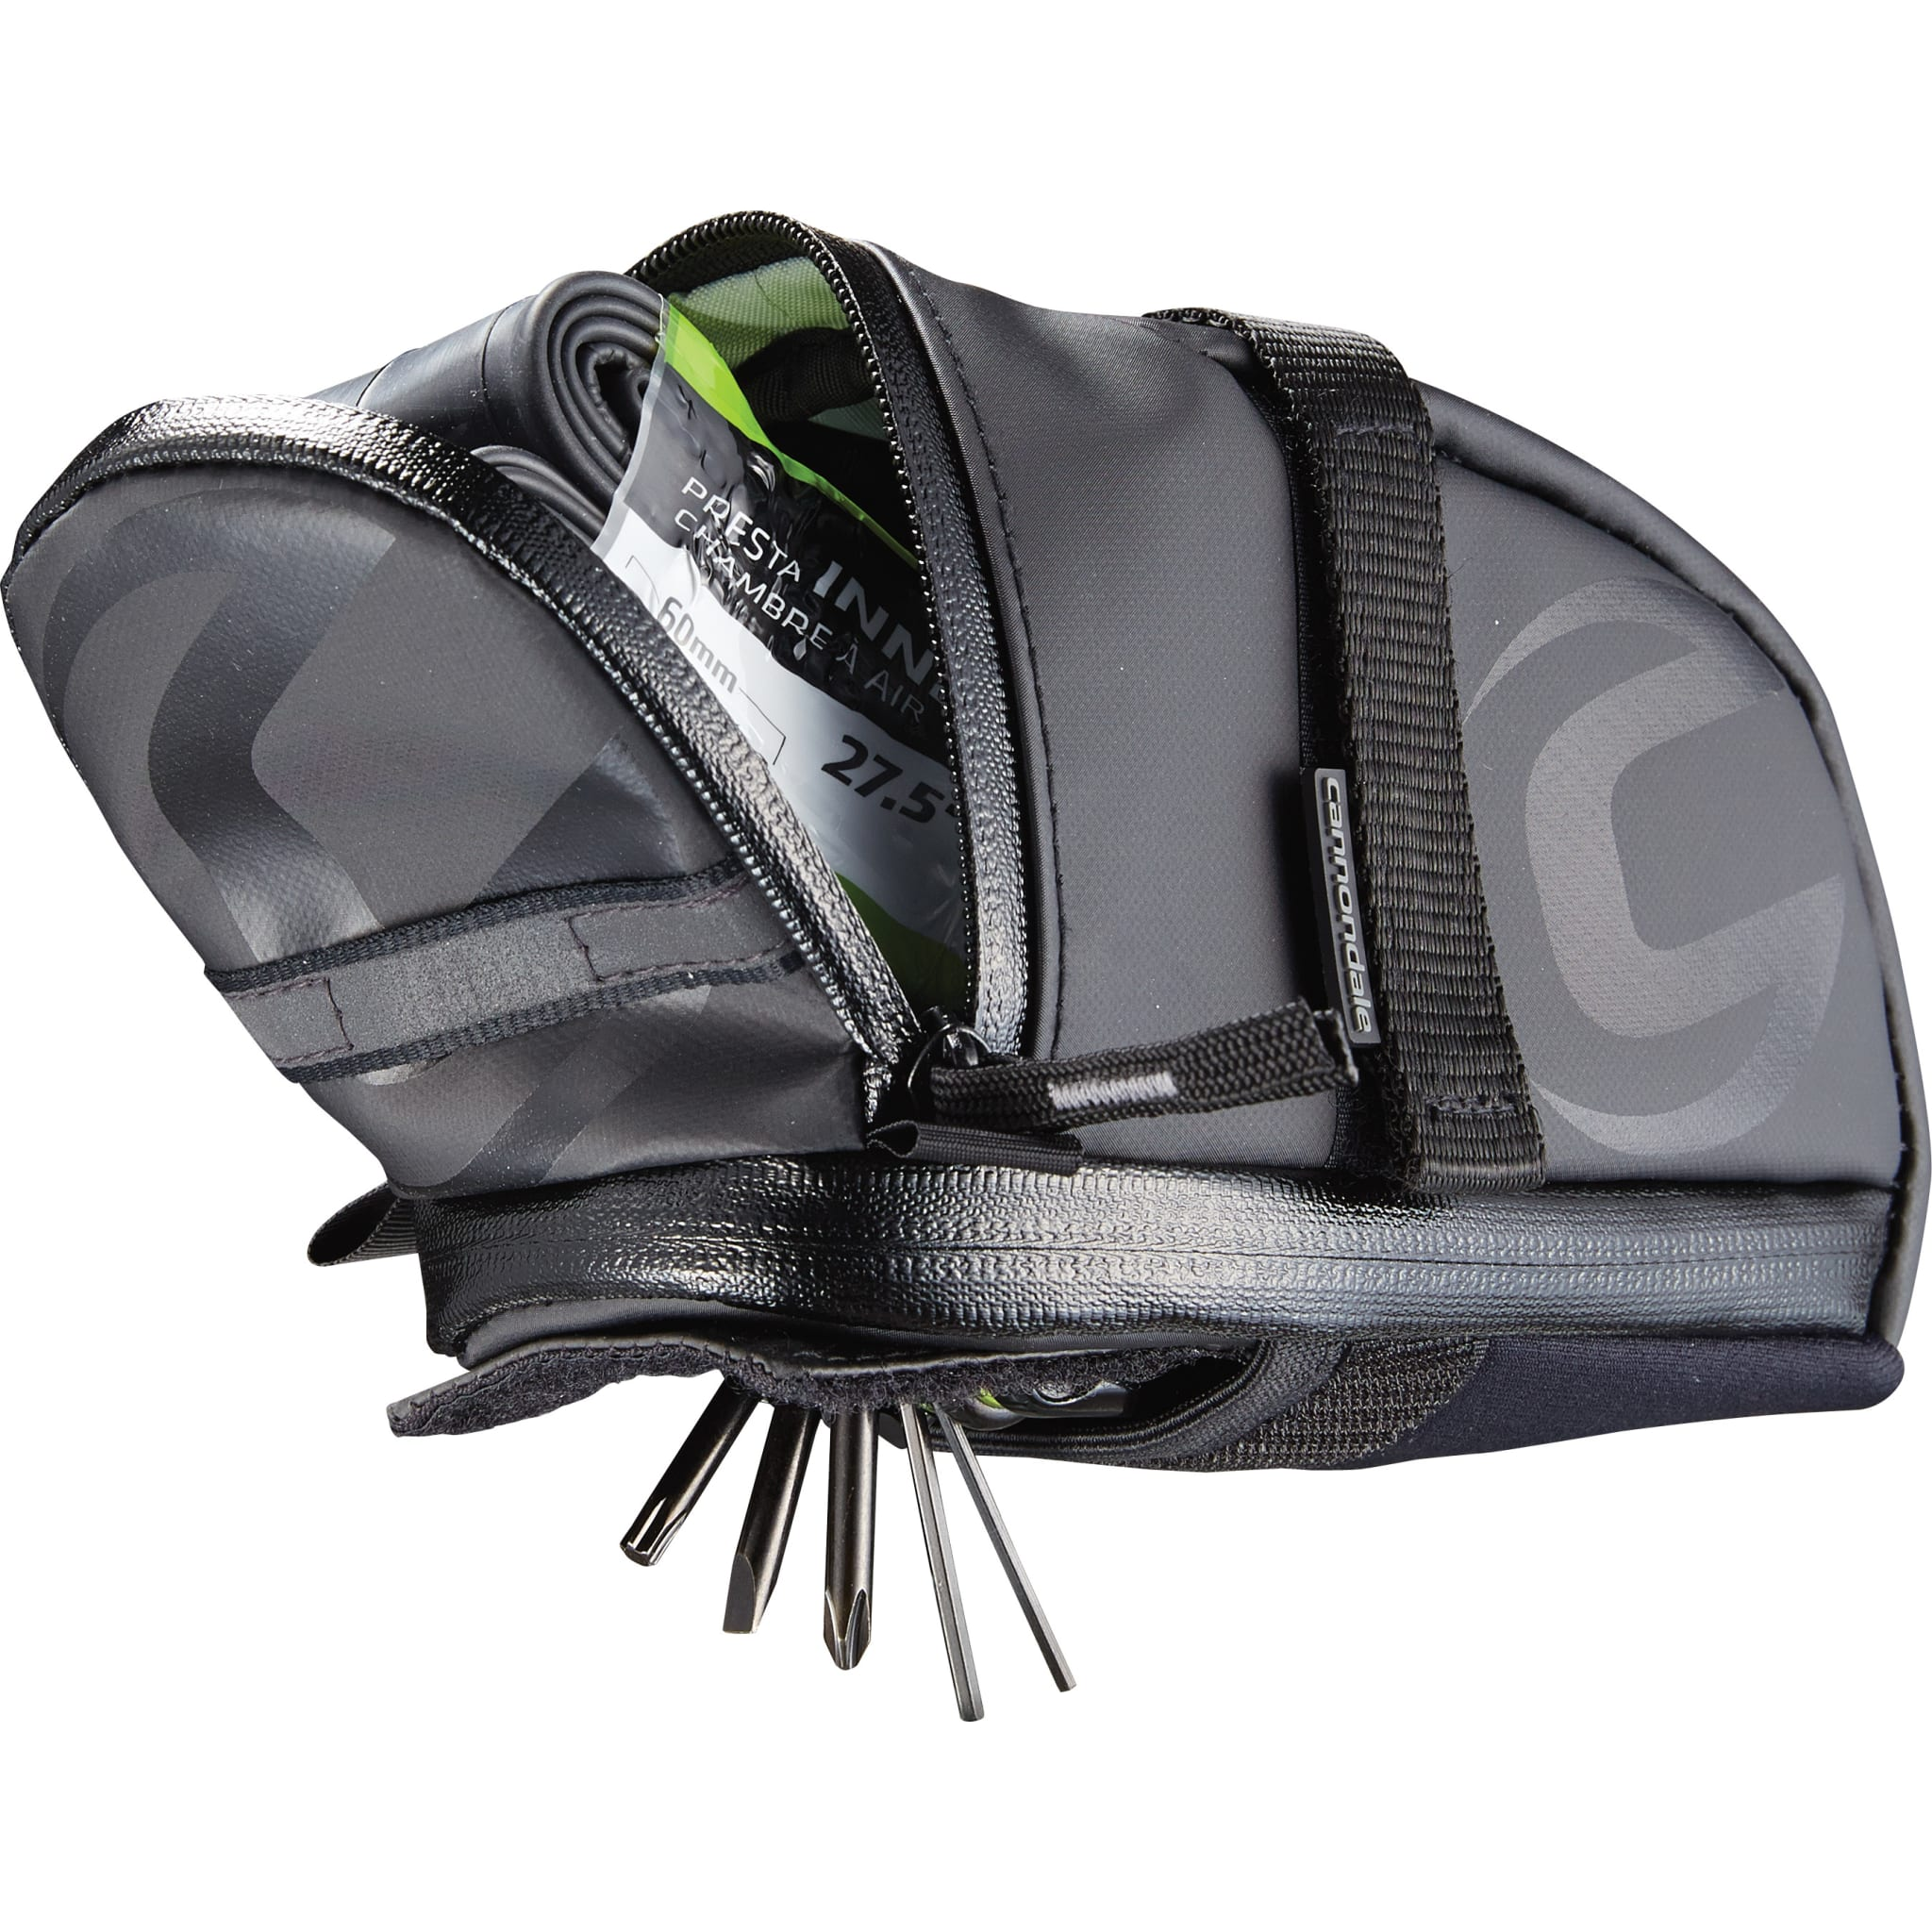 Speedster 2 Saddle Bag